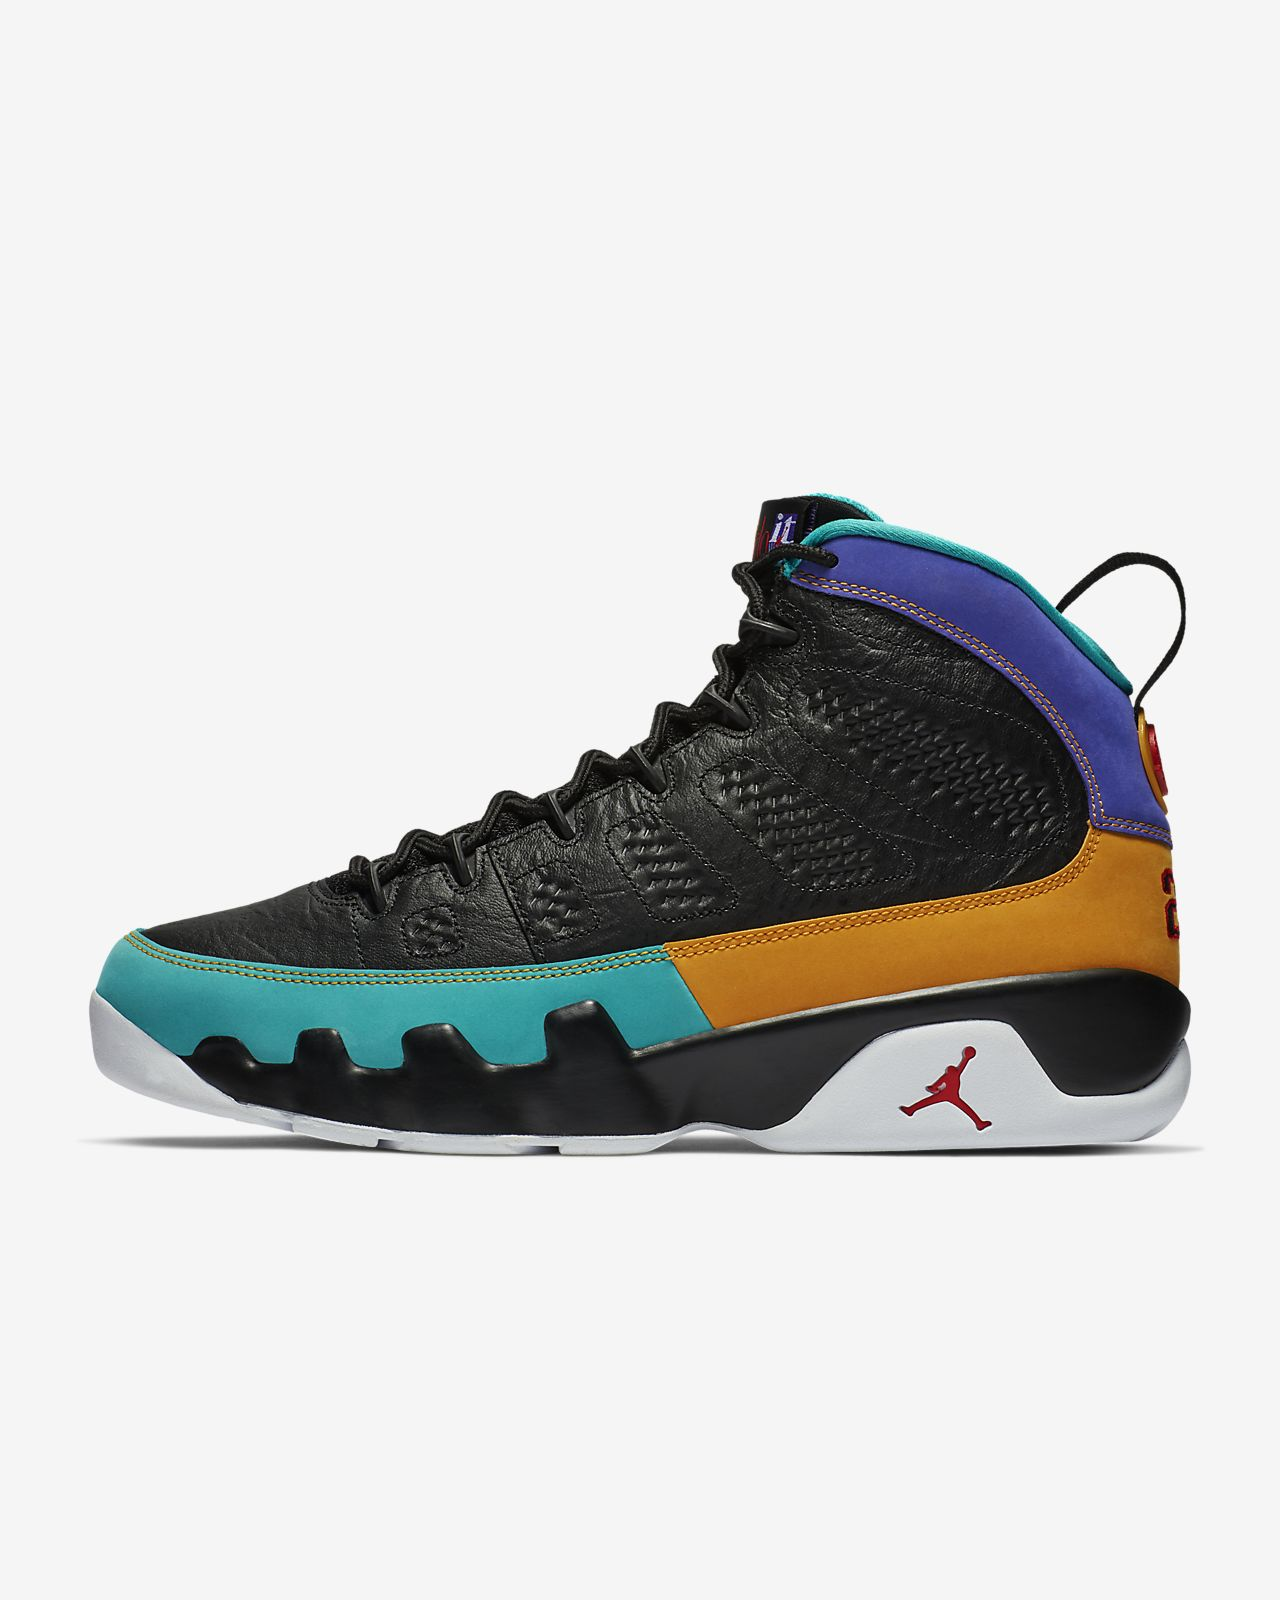 5263c71c786 Air Jordan 9 Retro Men's Shoe. Nike.com